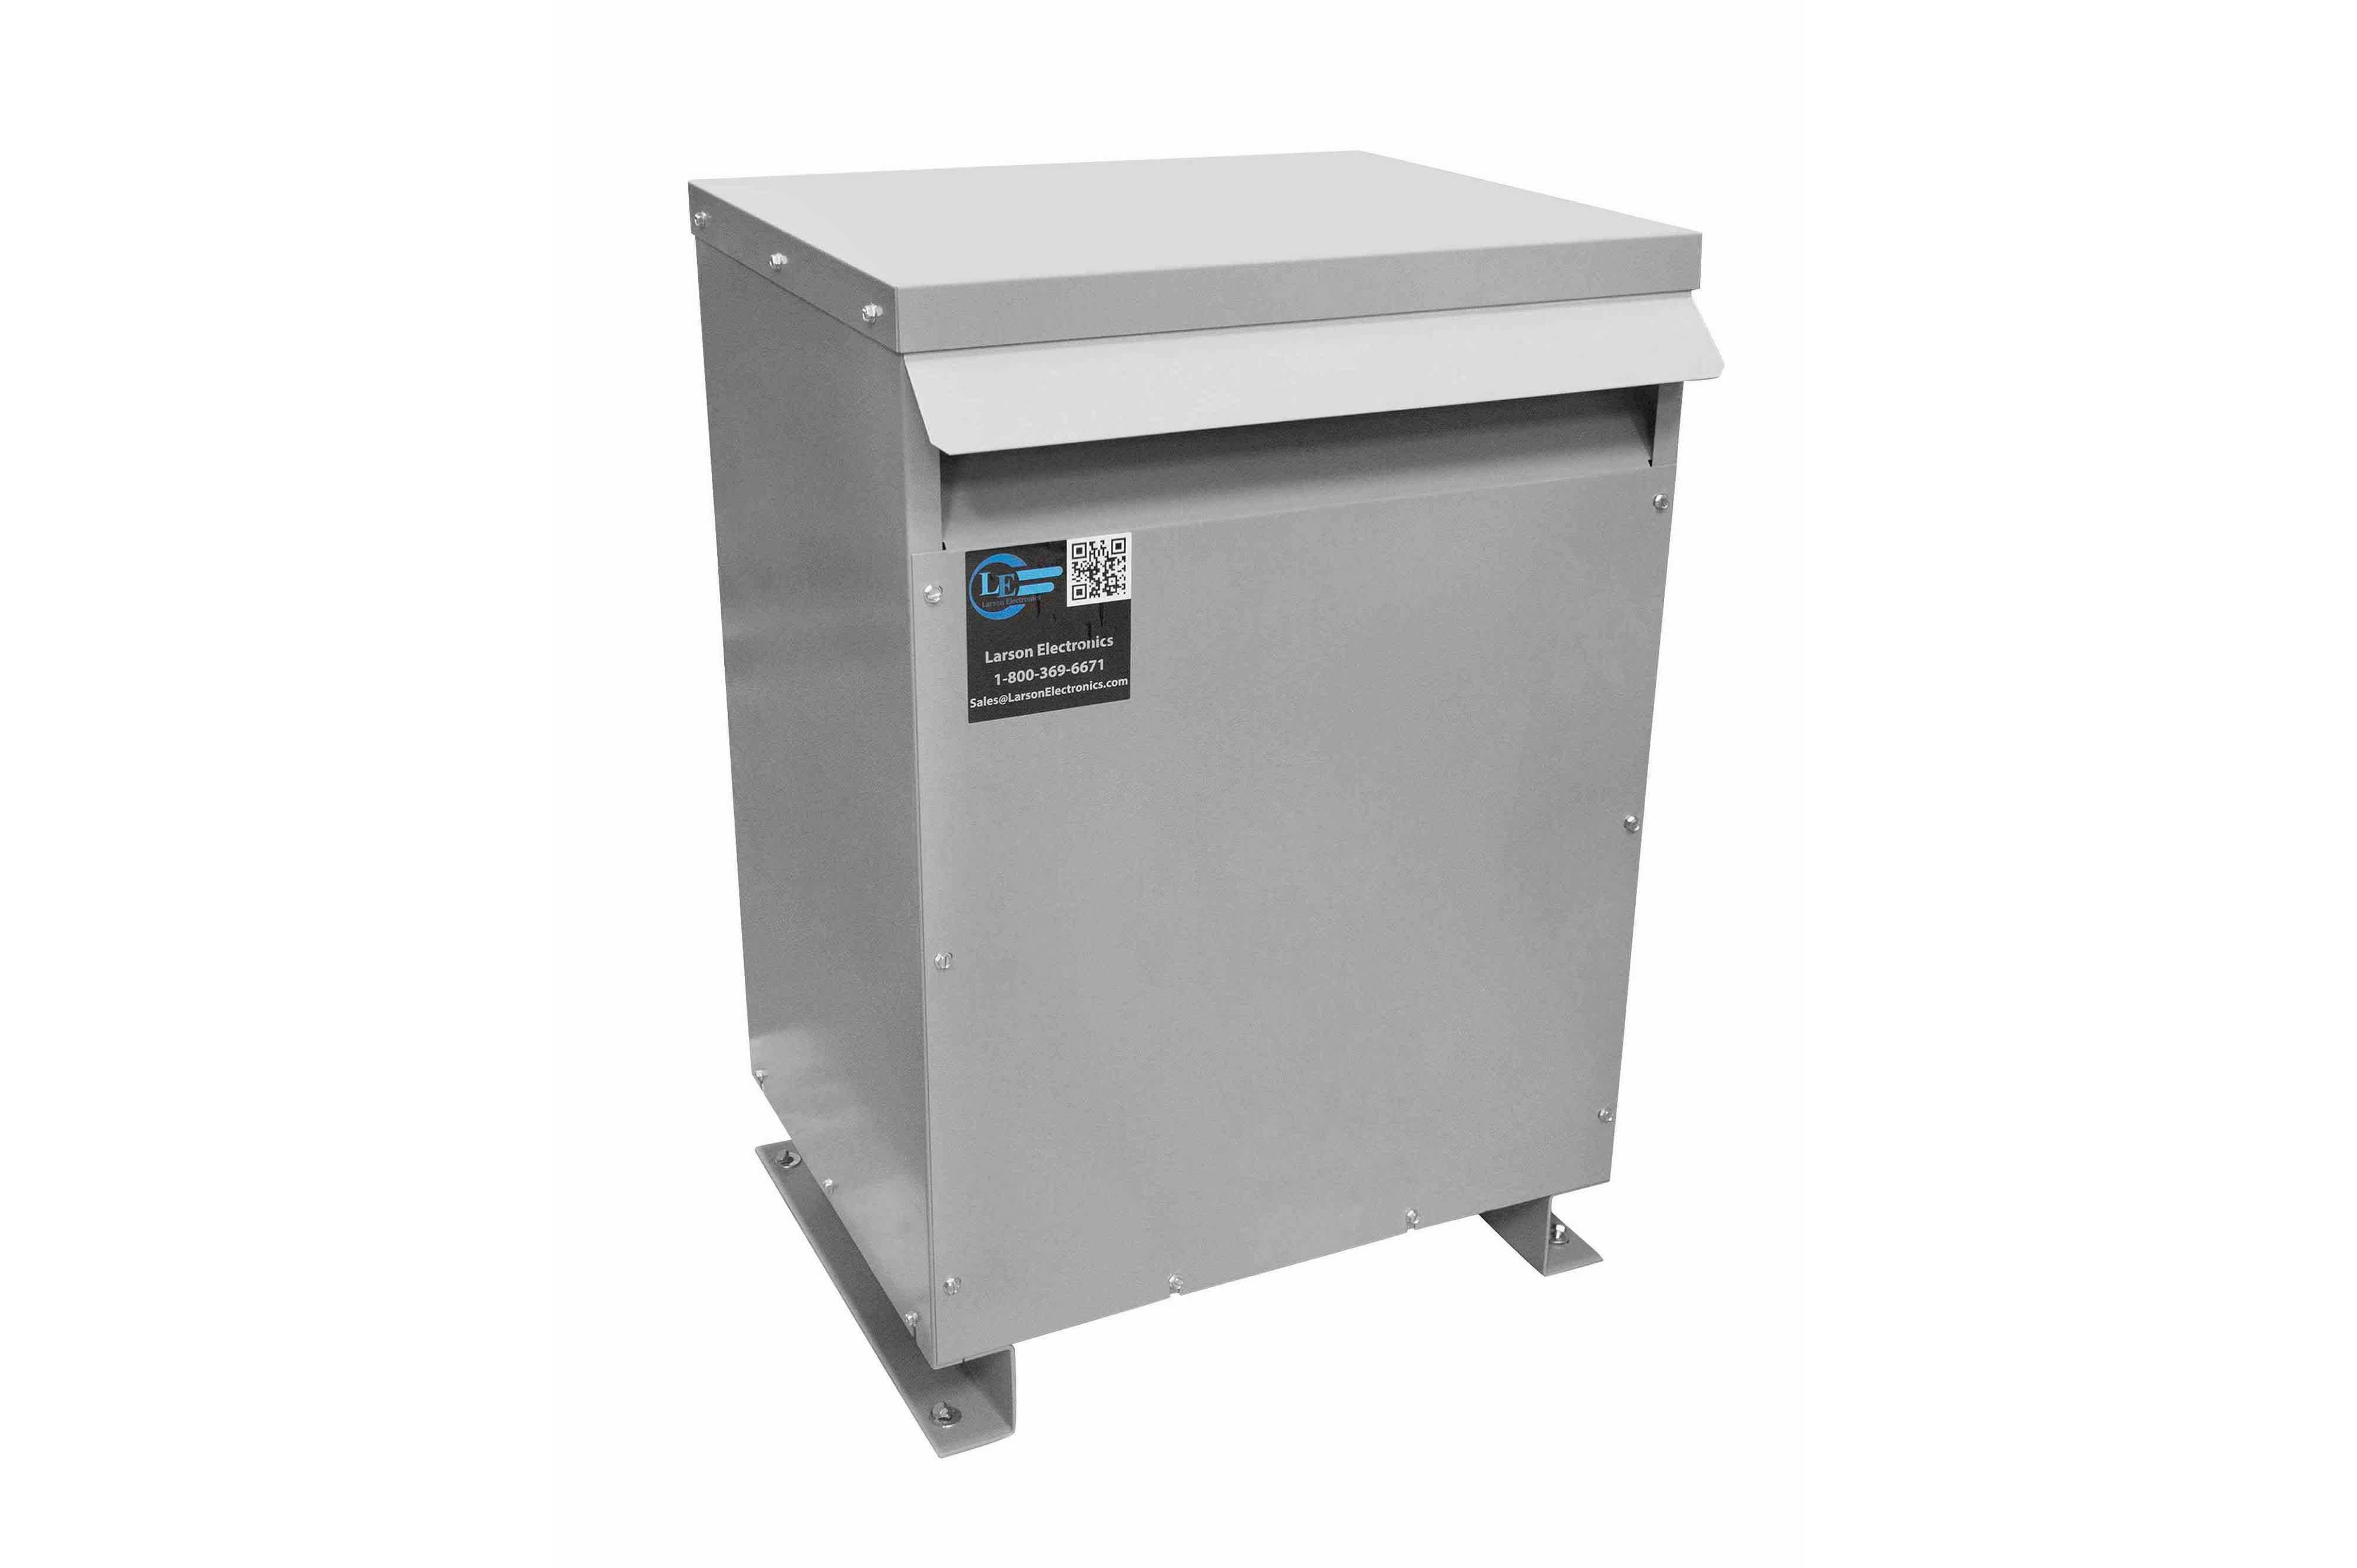 52.5 kVA 3PH Isolation Transformer, 400V Wye Primary, 480V Delta Secondary, N3R, Ventilated, 60 Hz